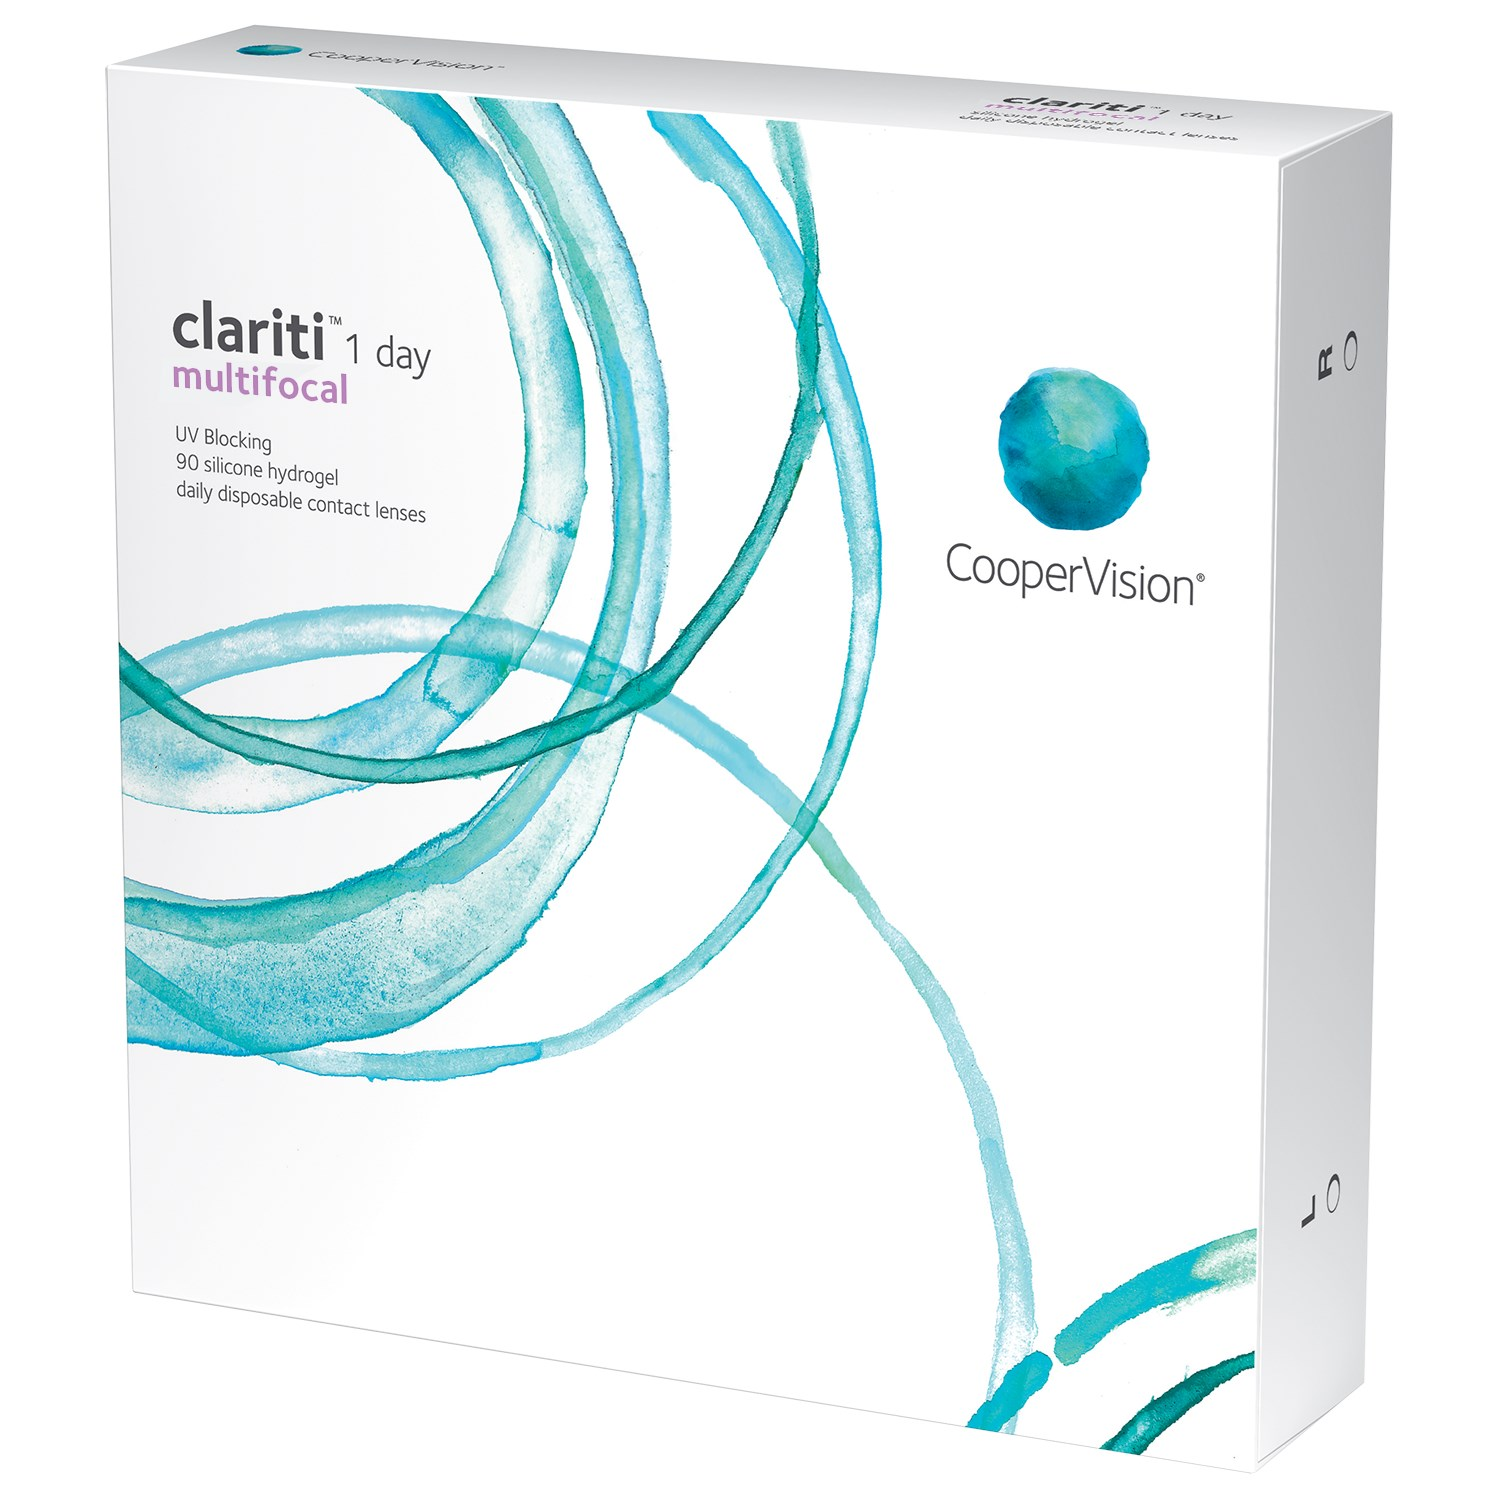 Clariti 1-day Multifocal 90-pack contact lenses